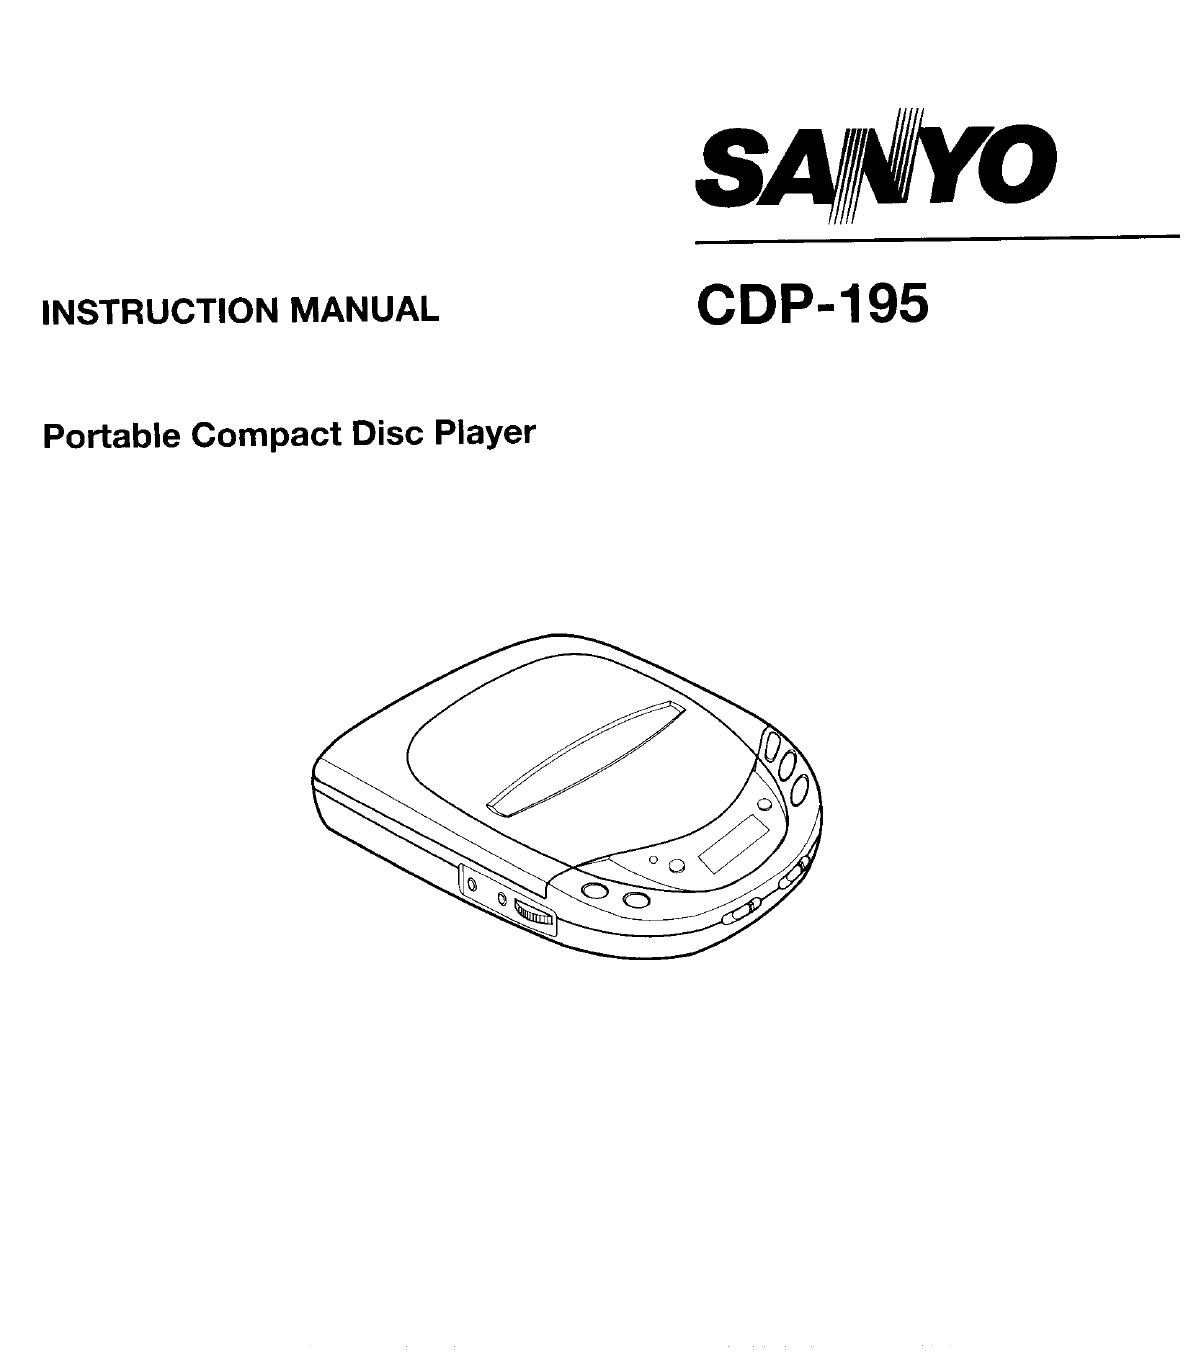 Sanyo Portable CD Player cdp-195 User Guide